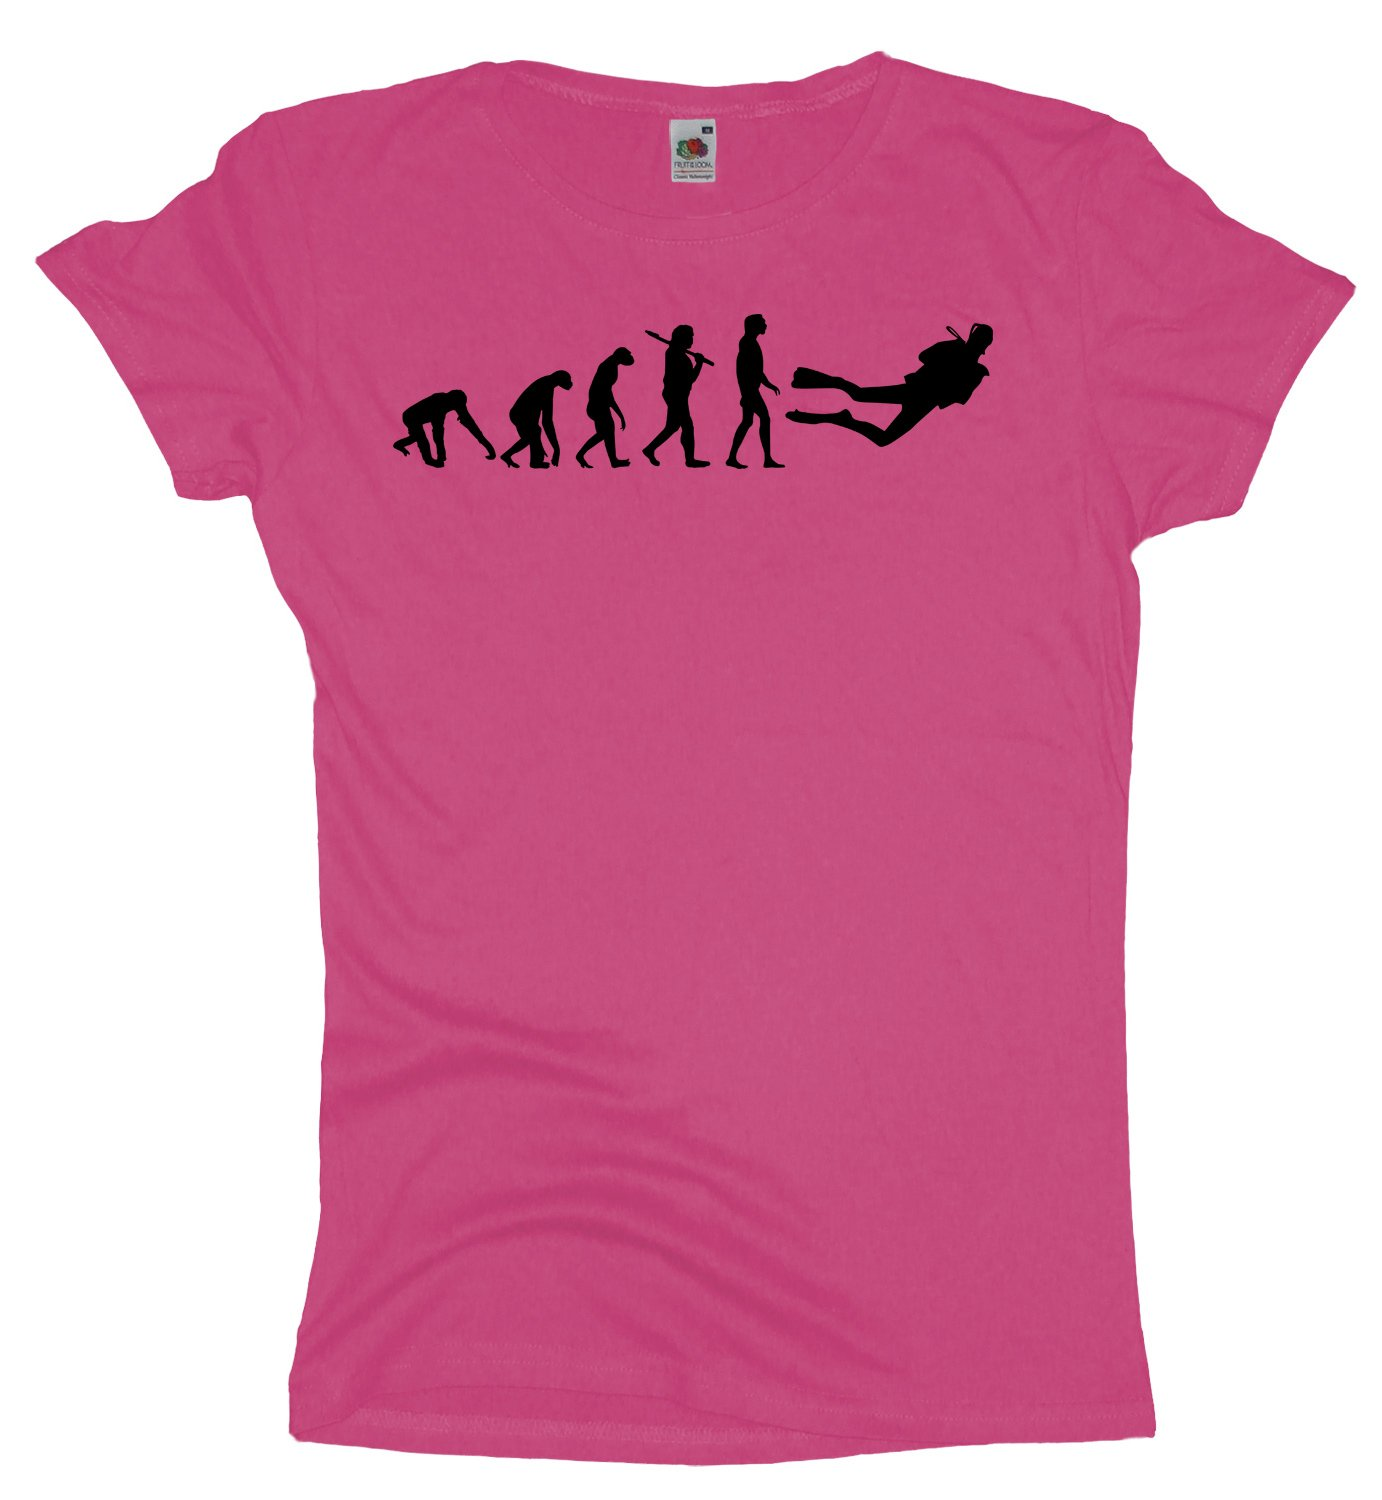 Ma2ca - Evolution - Taucher Diving - Damen Girlie T-Shirt: Amazon.de:  Bekleidung